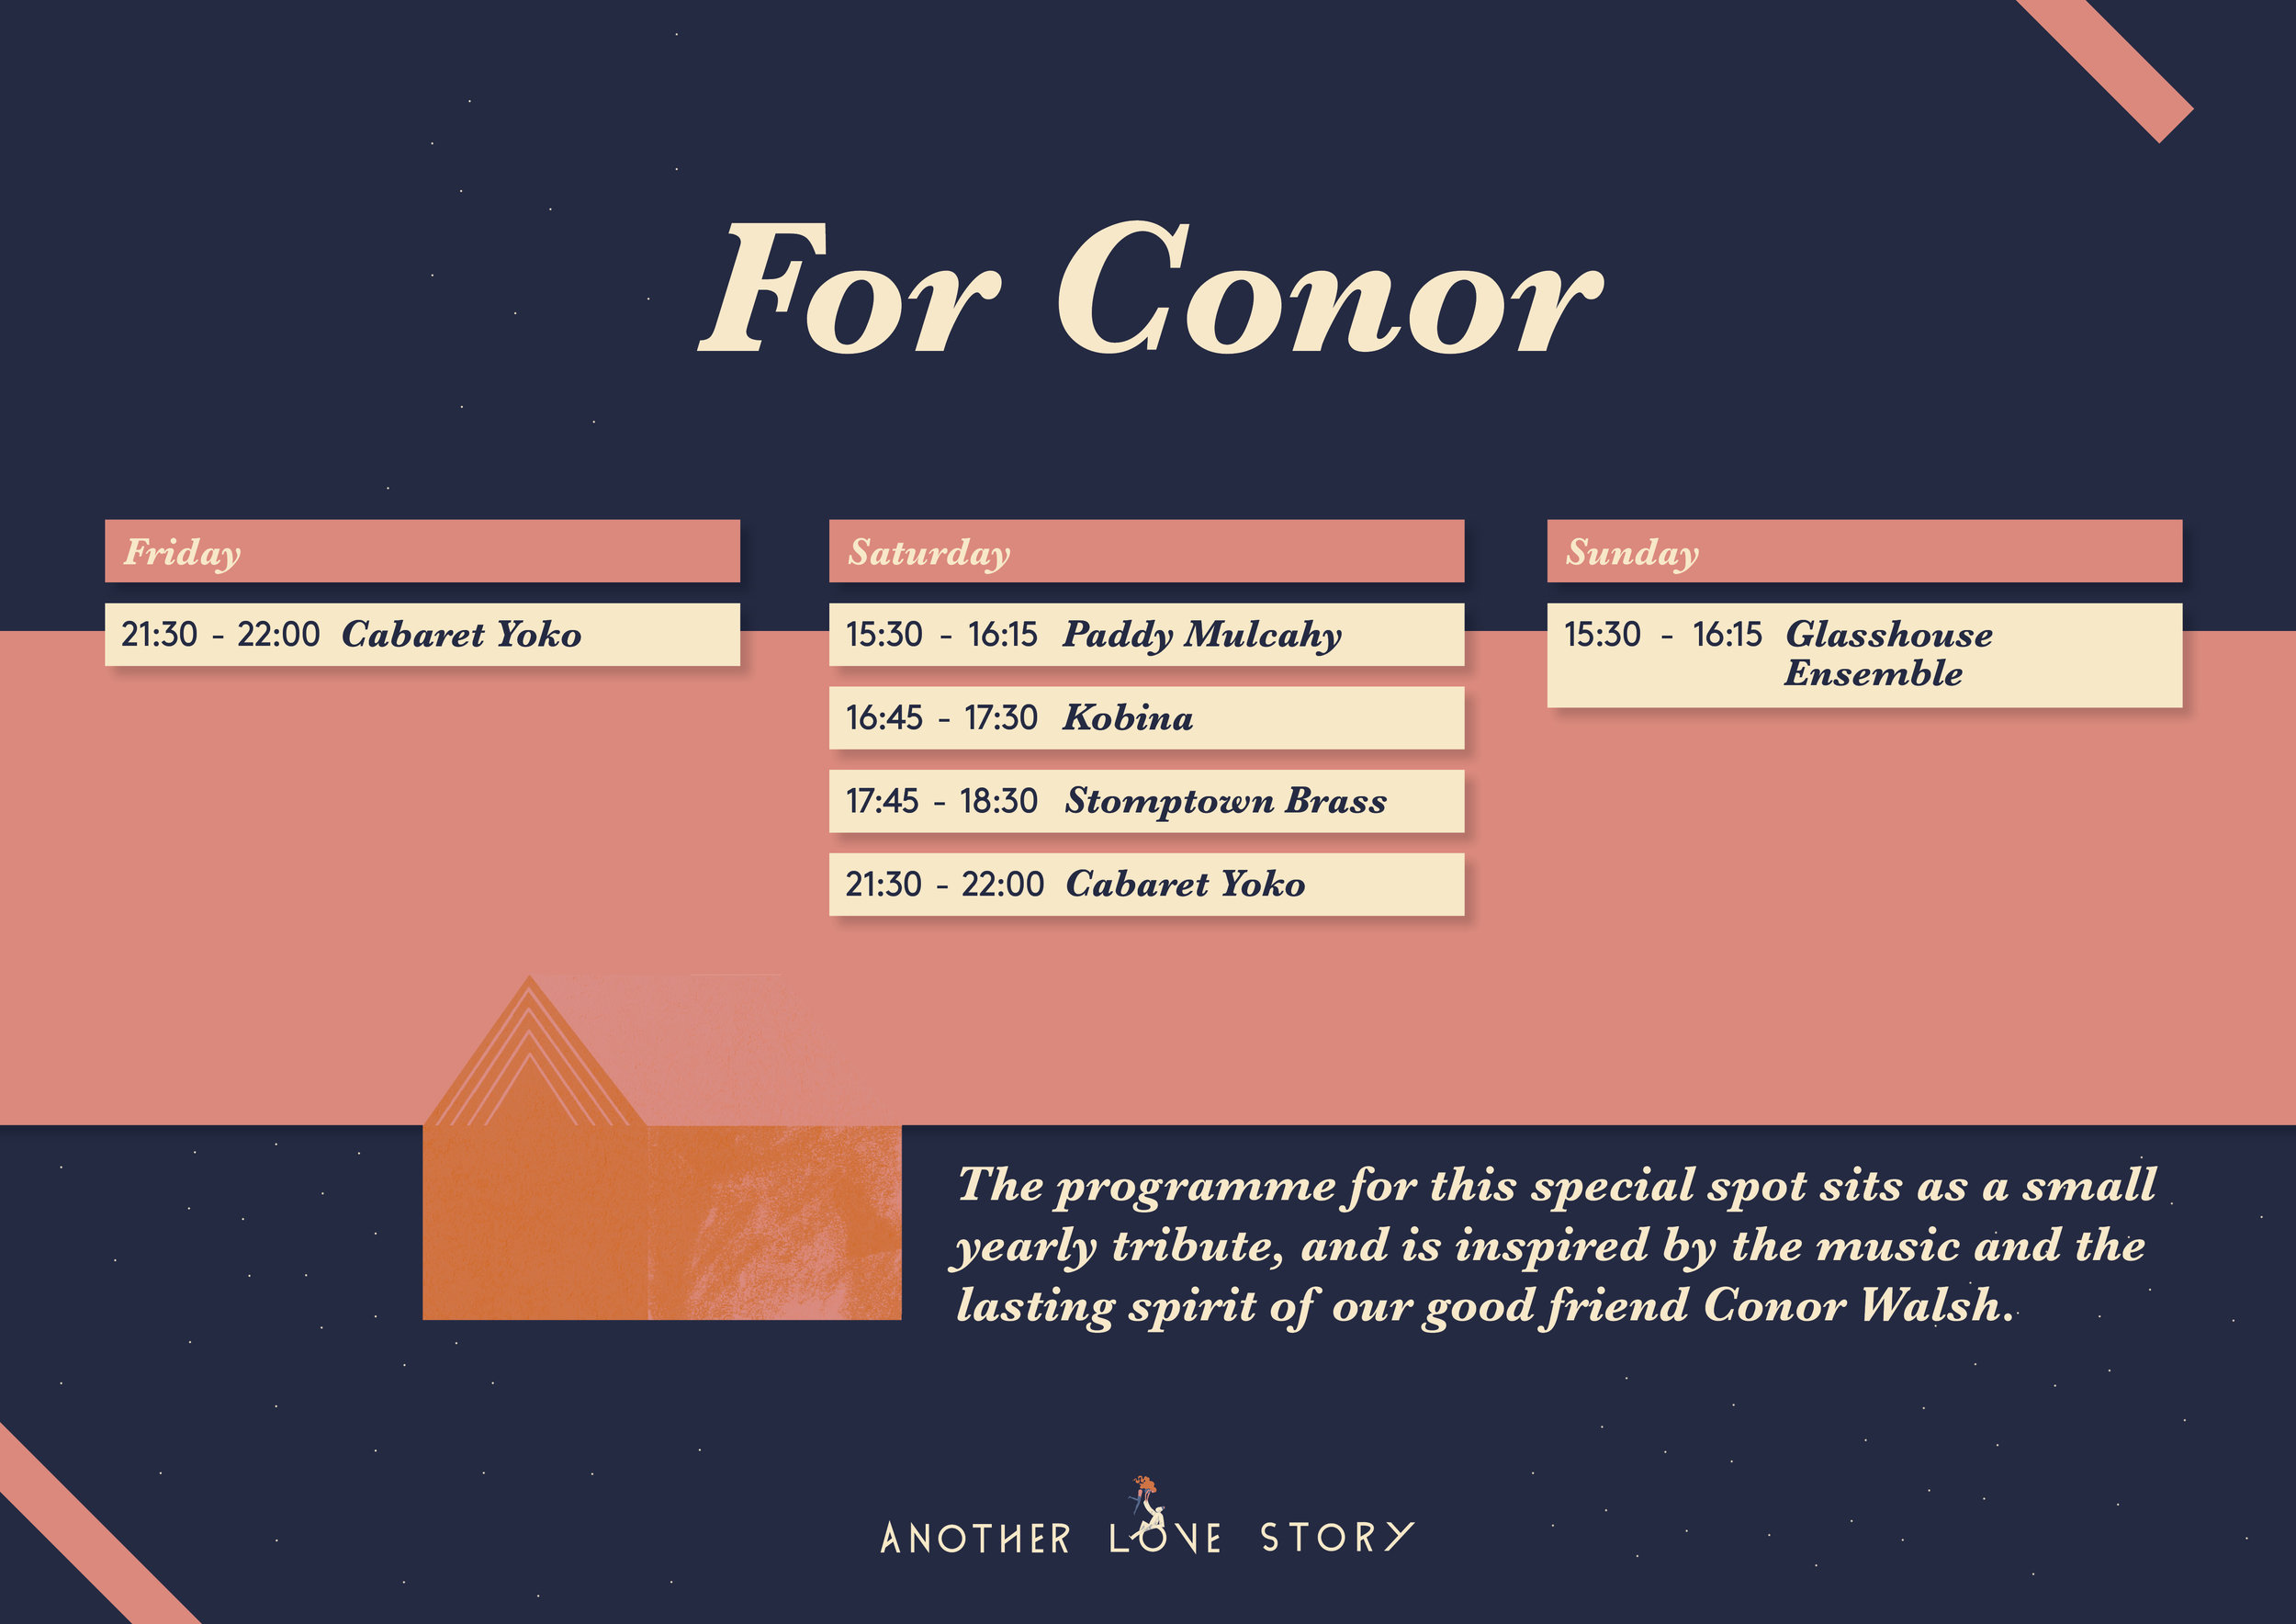 schedules_for conor.jpg